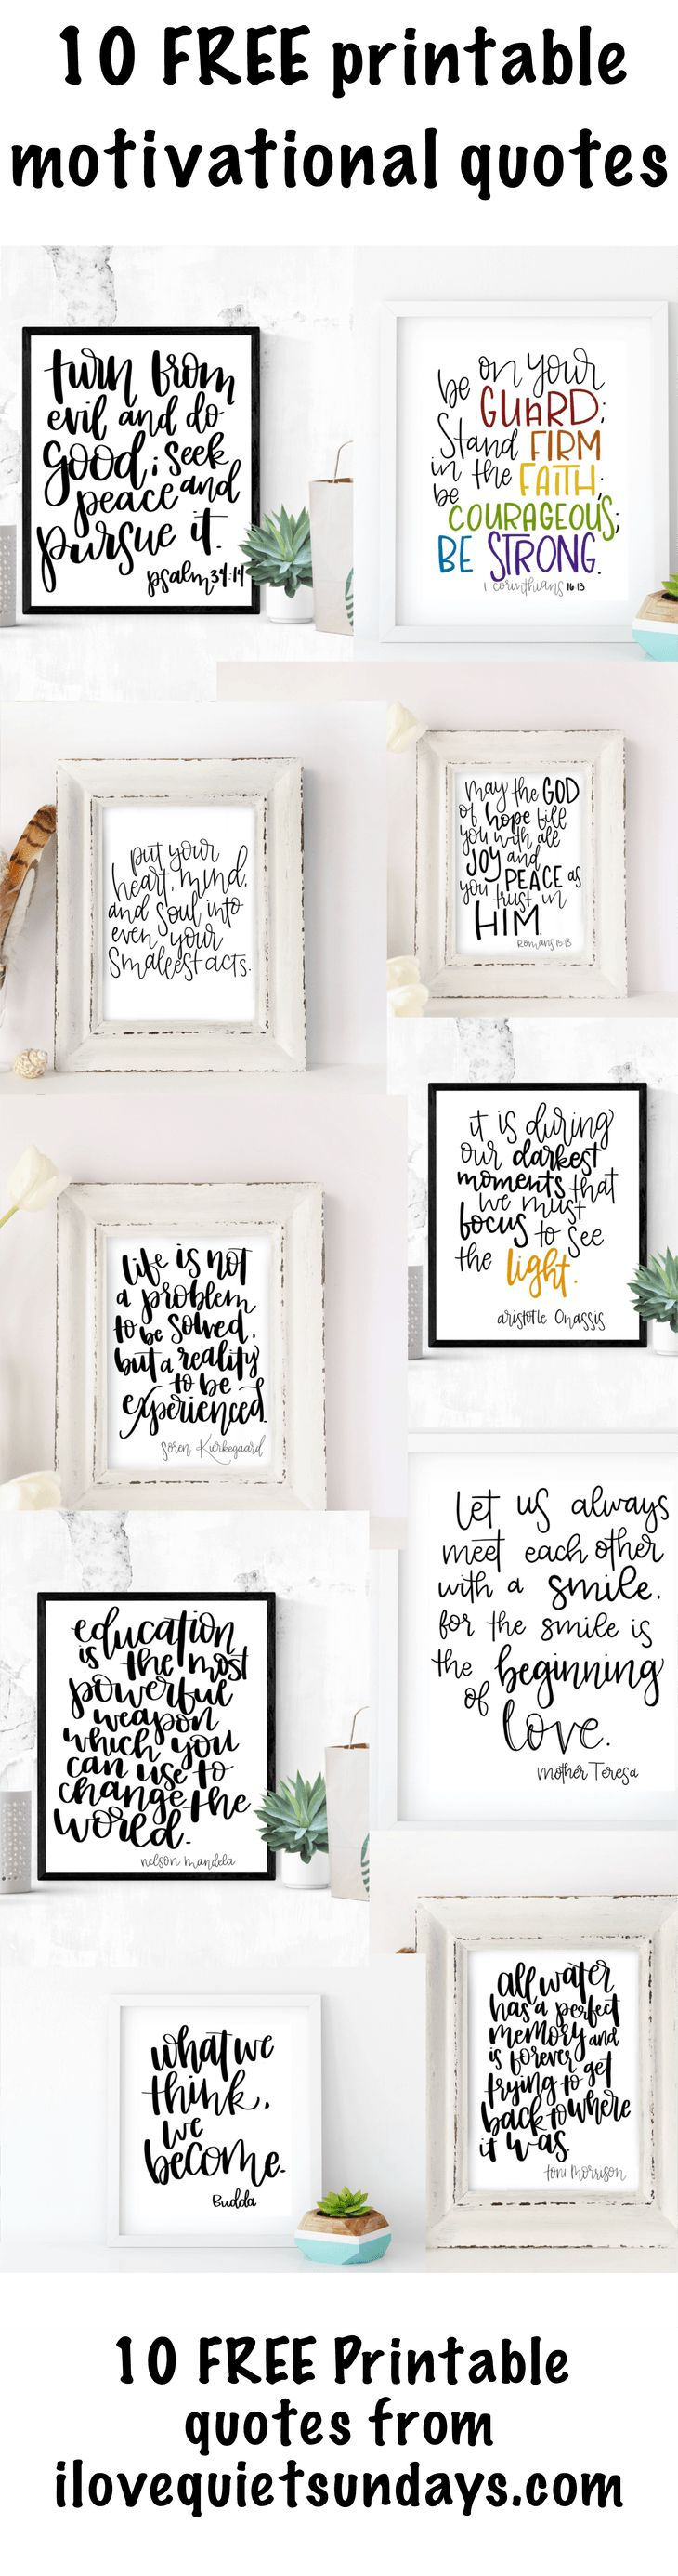 118 Best Word Art Images On Pinterest   Free Printables, Etchings - Free Printable Quotes Templates